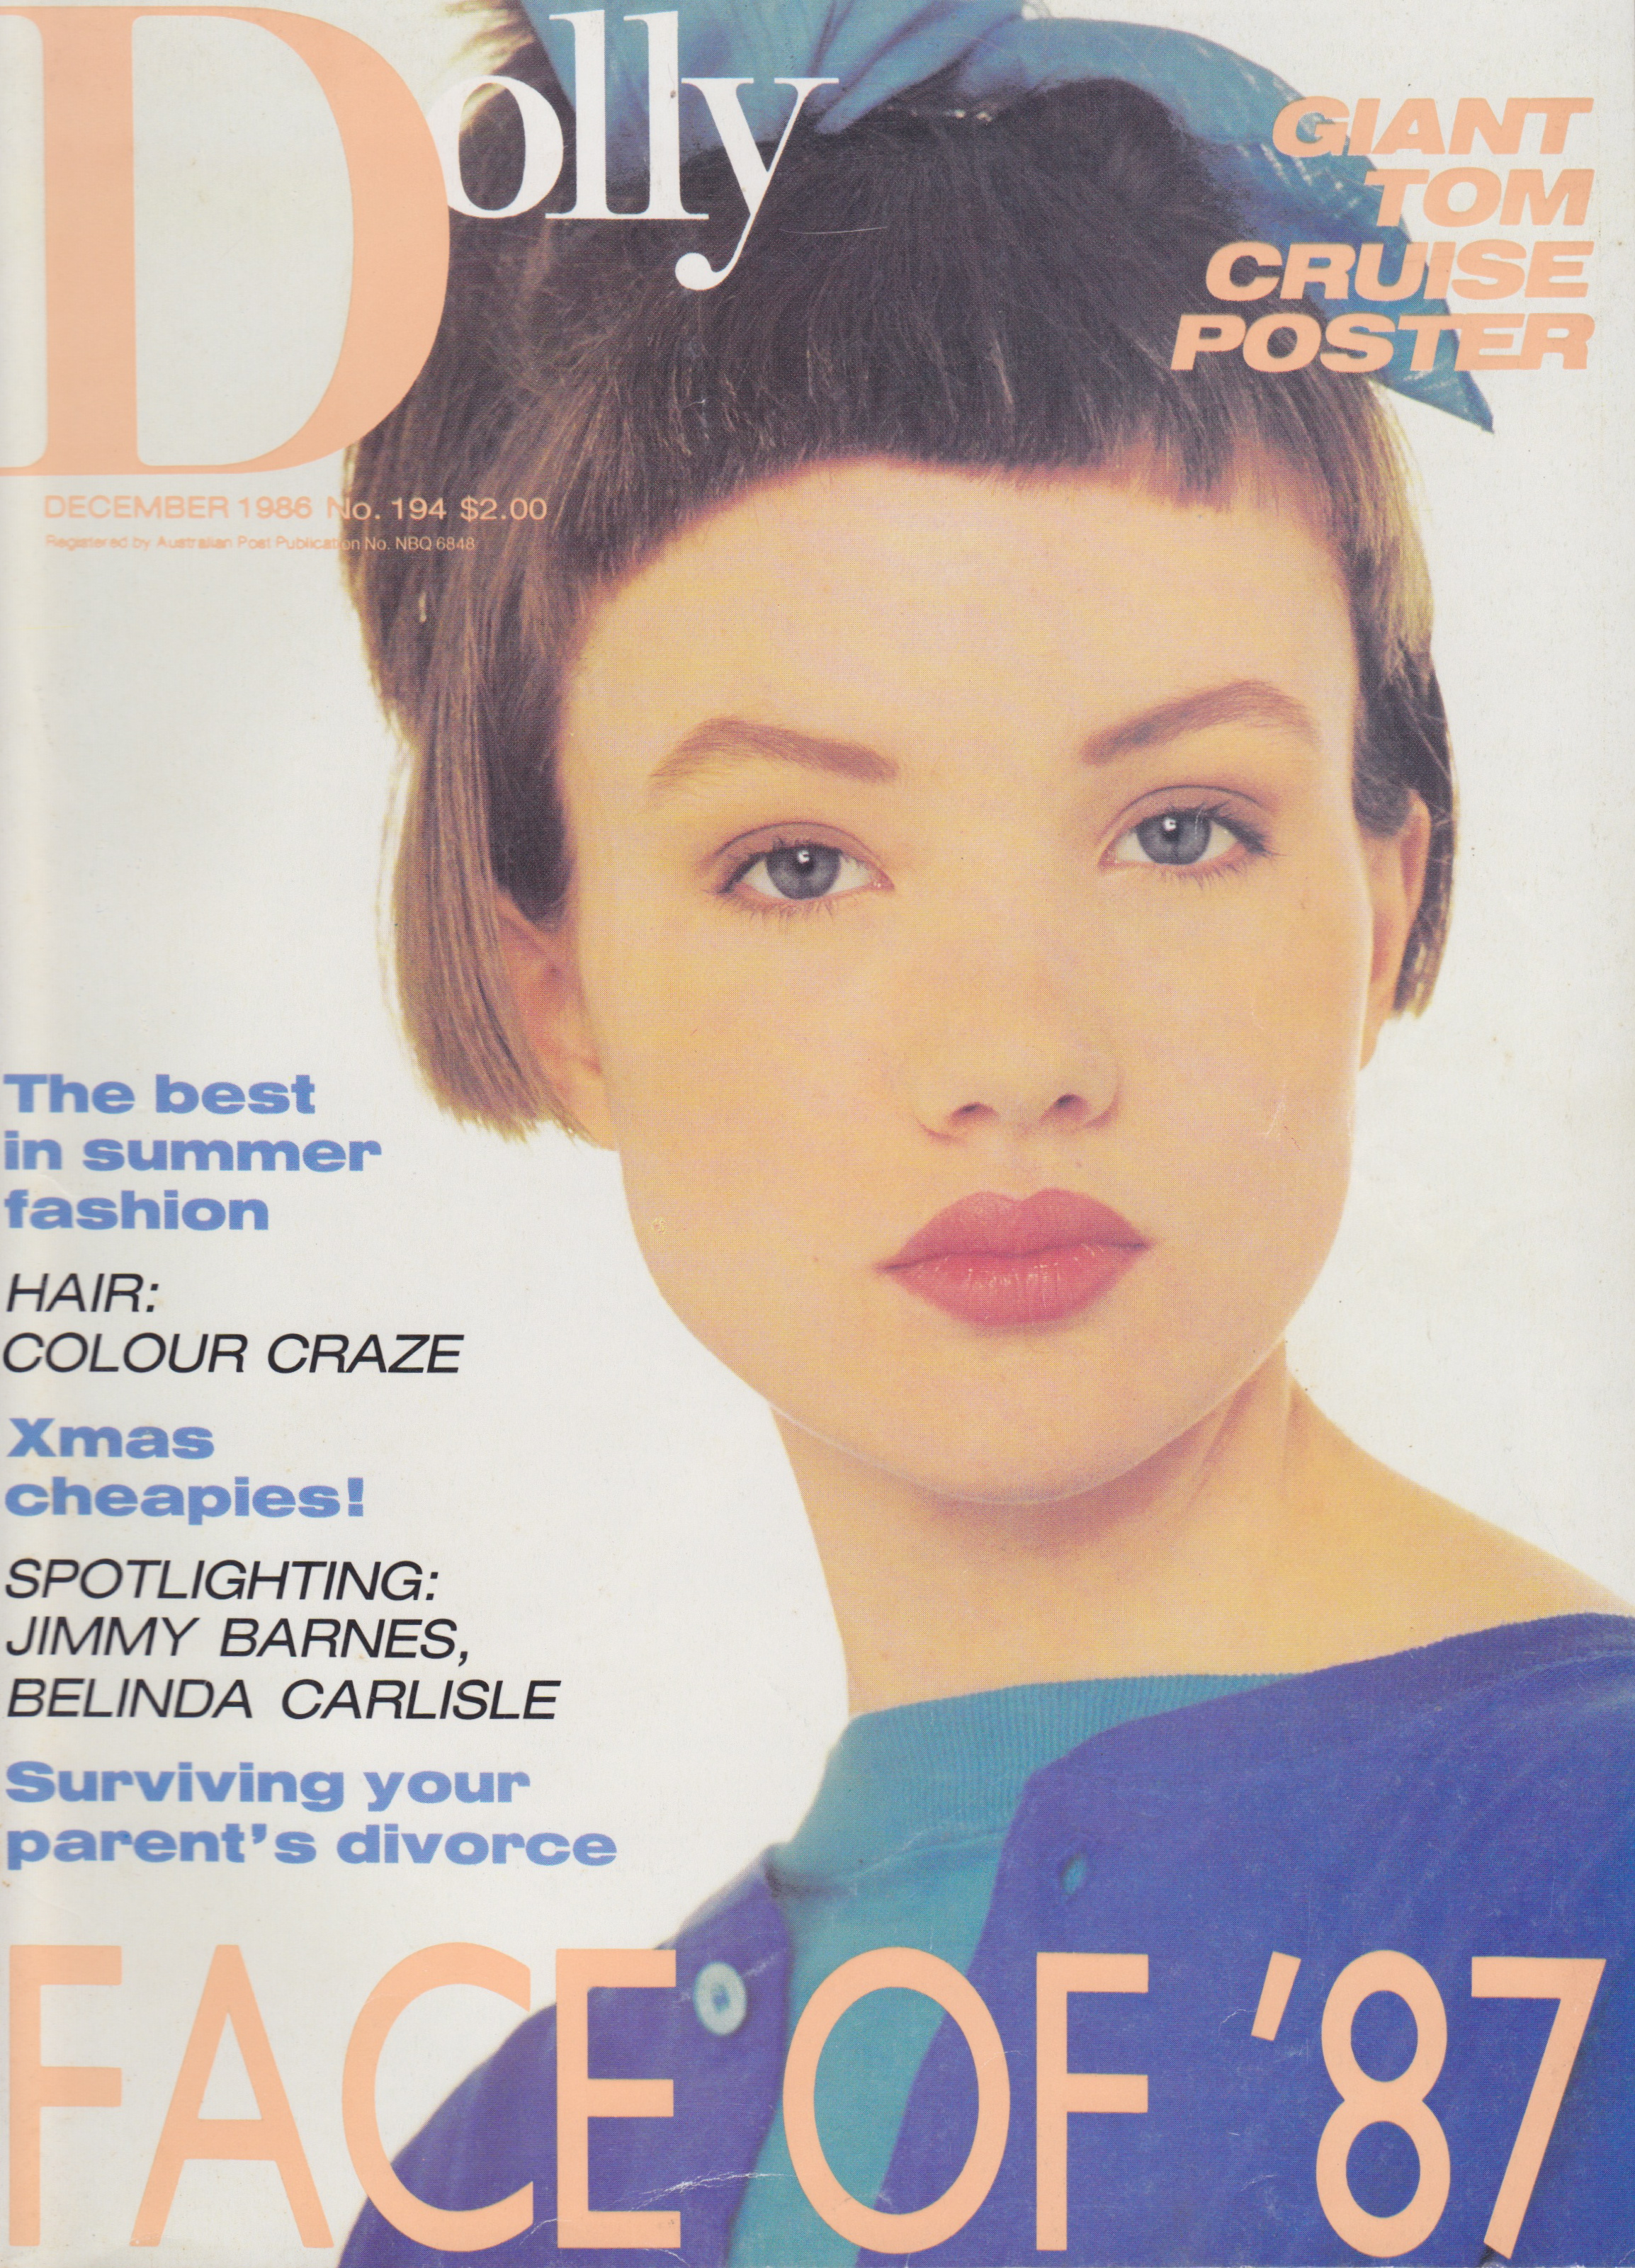 Dolly Magazine Covergirl Competition 1986 | Caitlin Jones